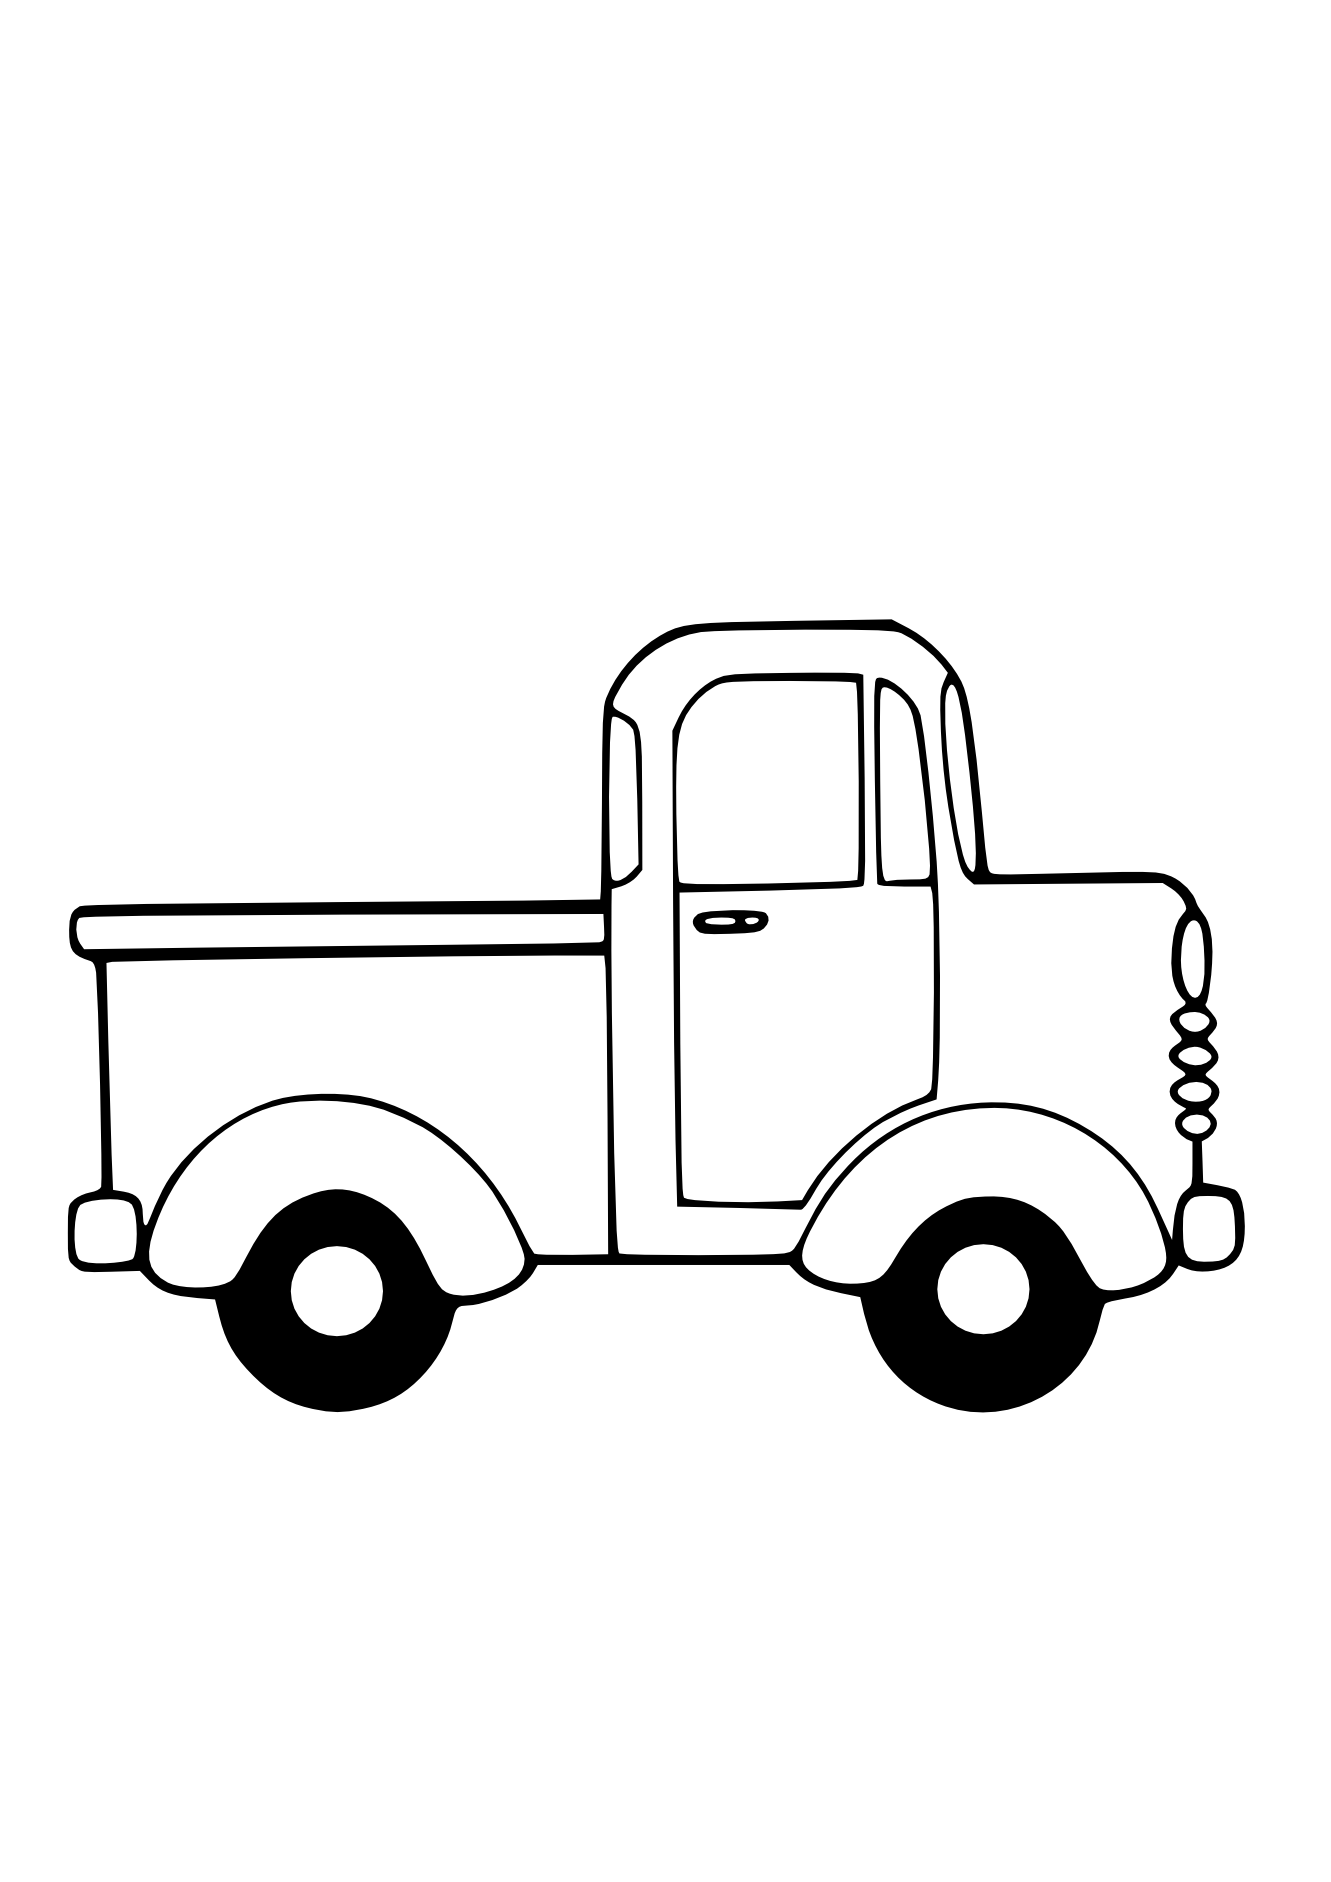 1331x1882 Truck black and white semi truck clipart black and white free 2